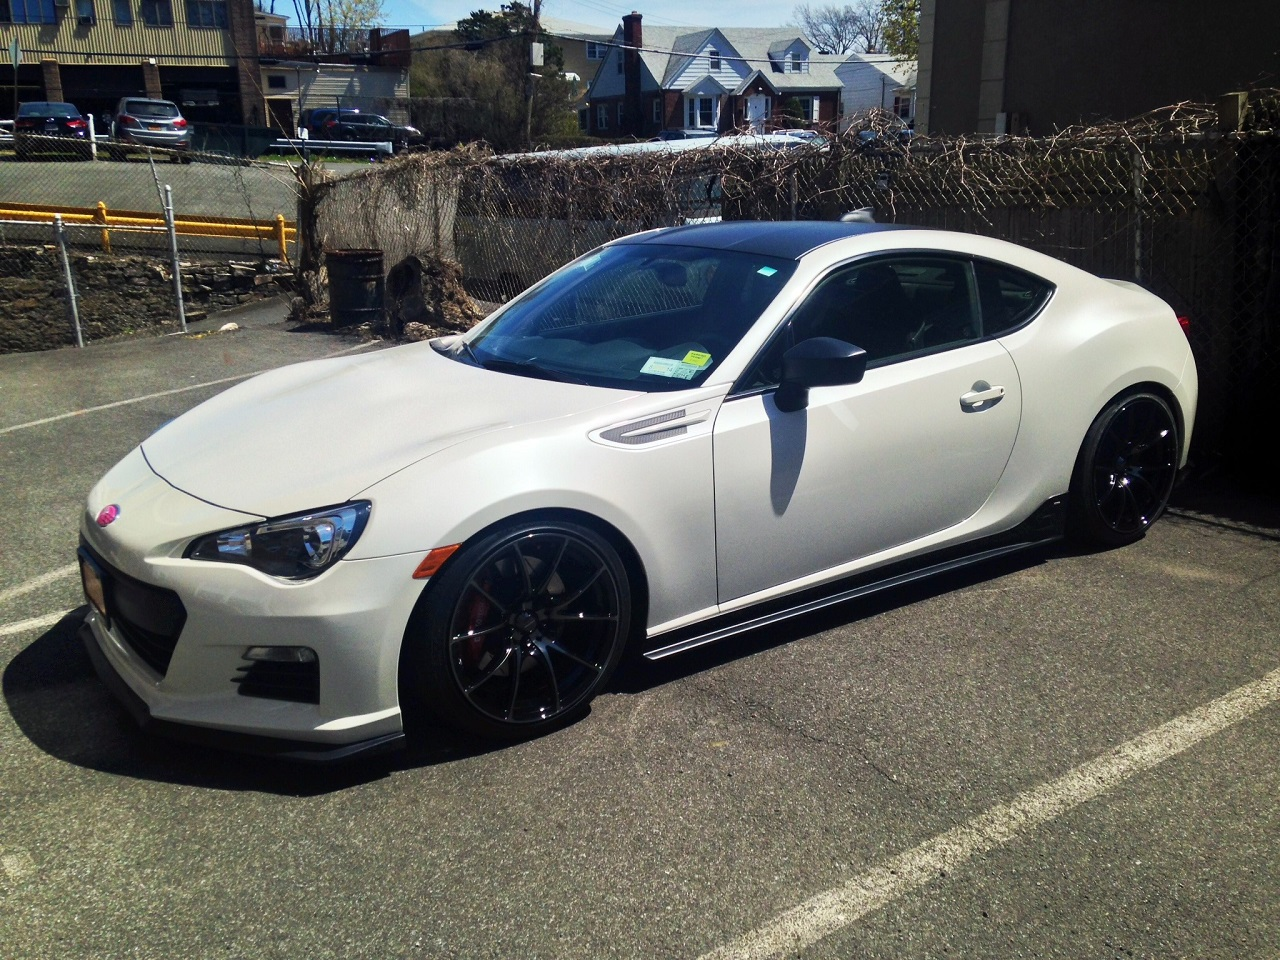 subaru brz custom wheels wedssport sa10r 18x9 5 et 45 tire size r18 x et. Black Bedroom Furniture Sets. Home Design Ideas